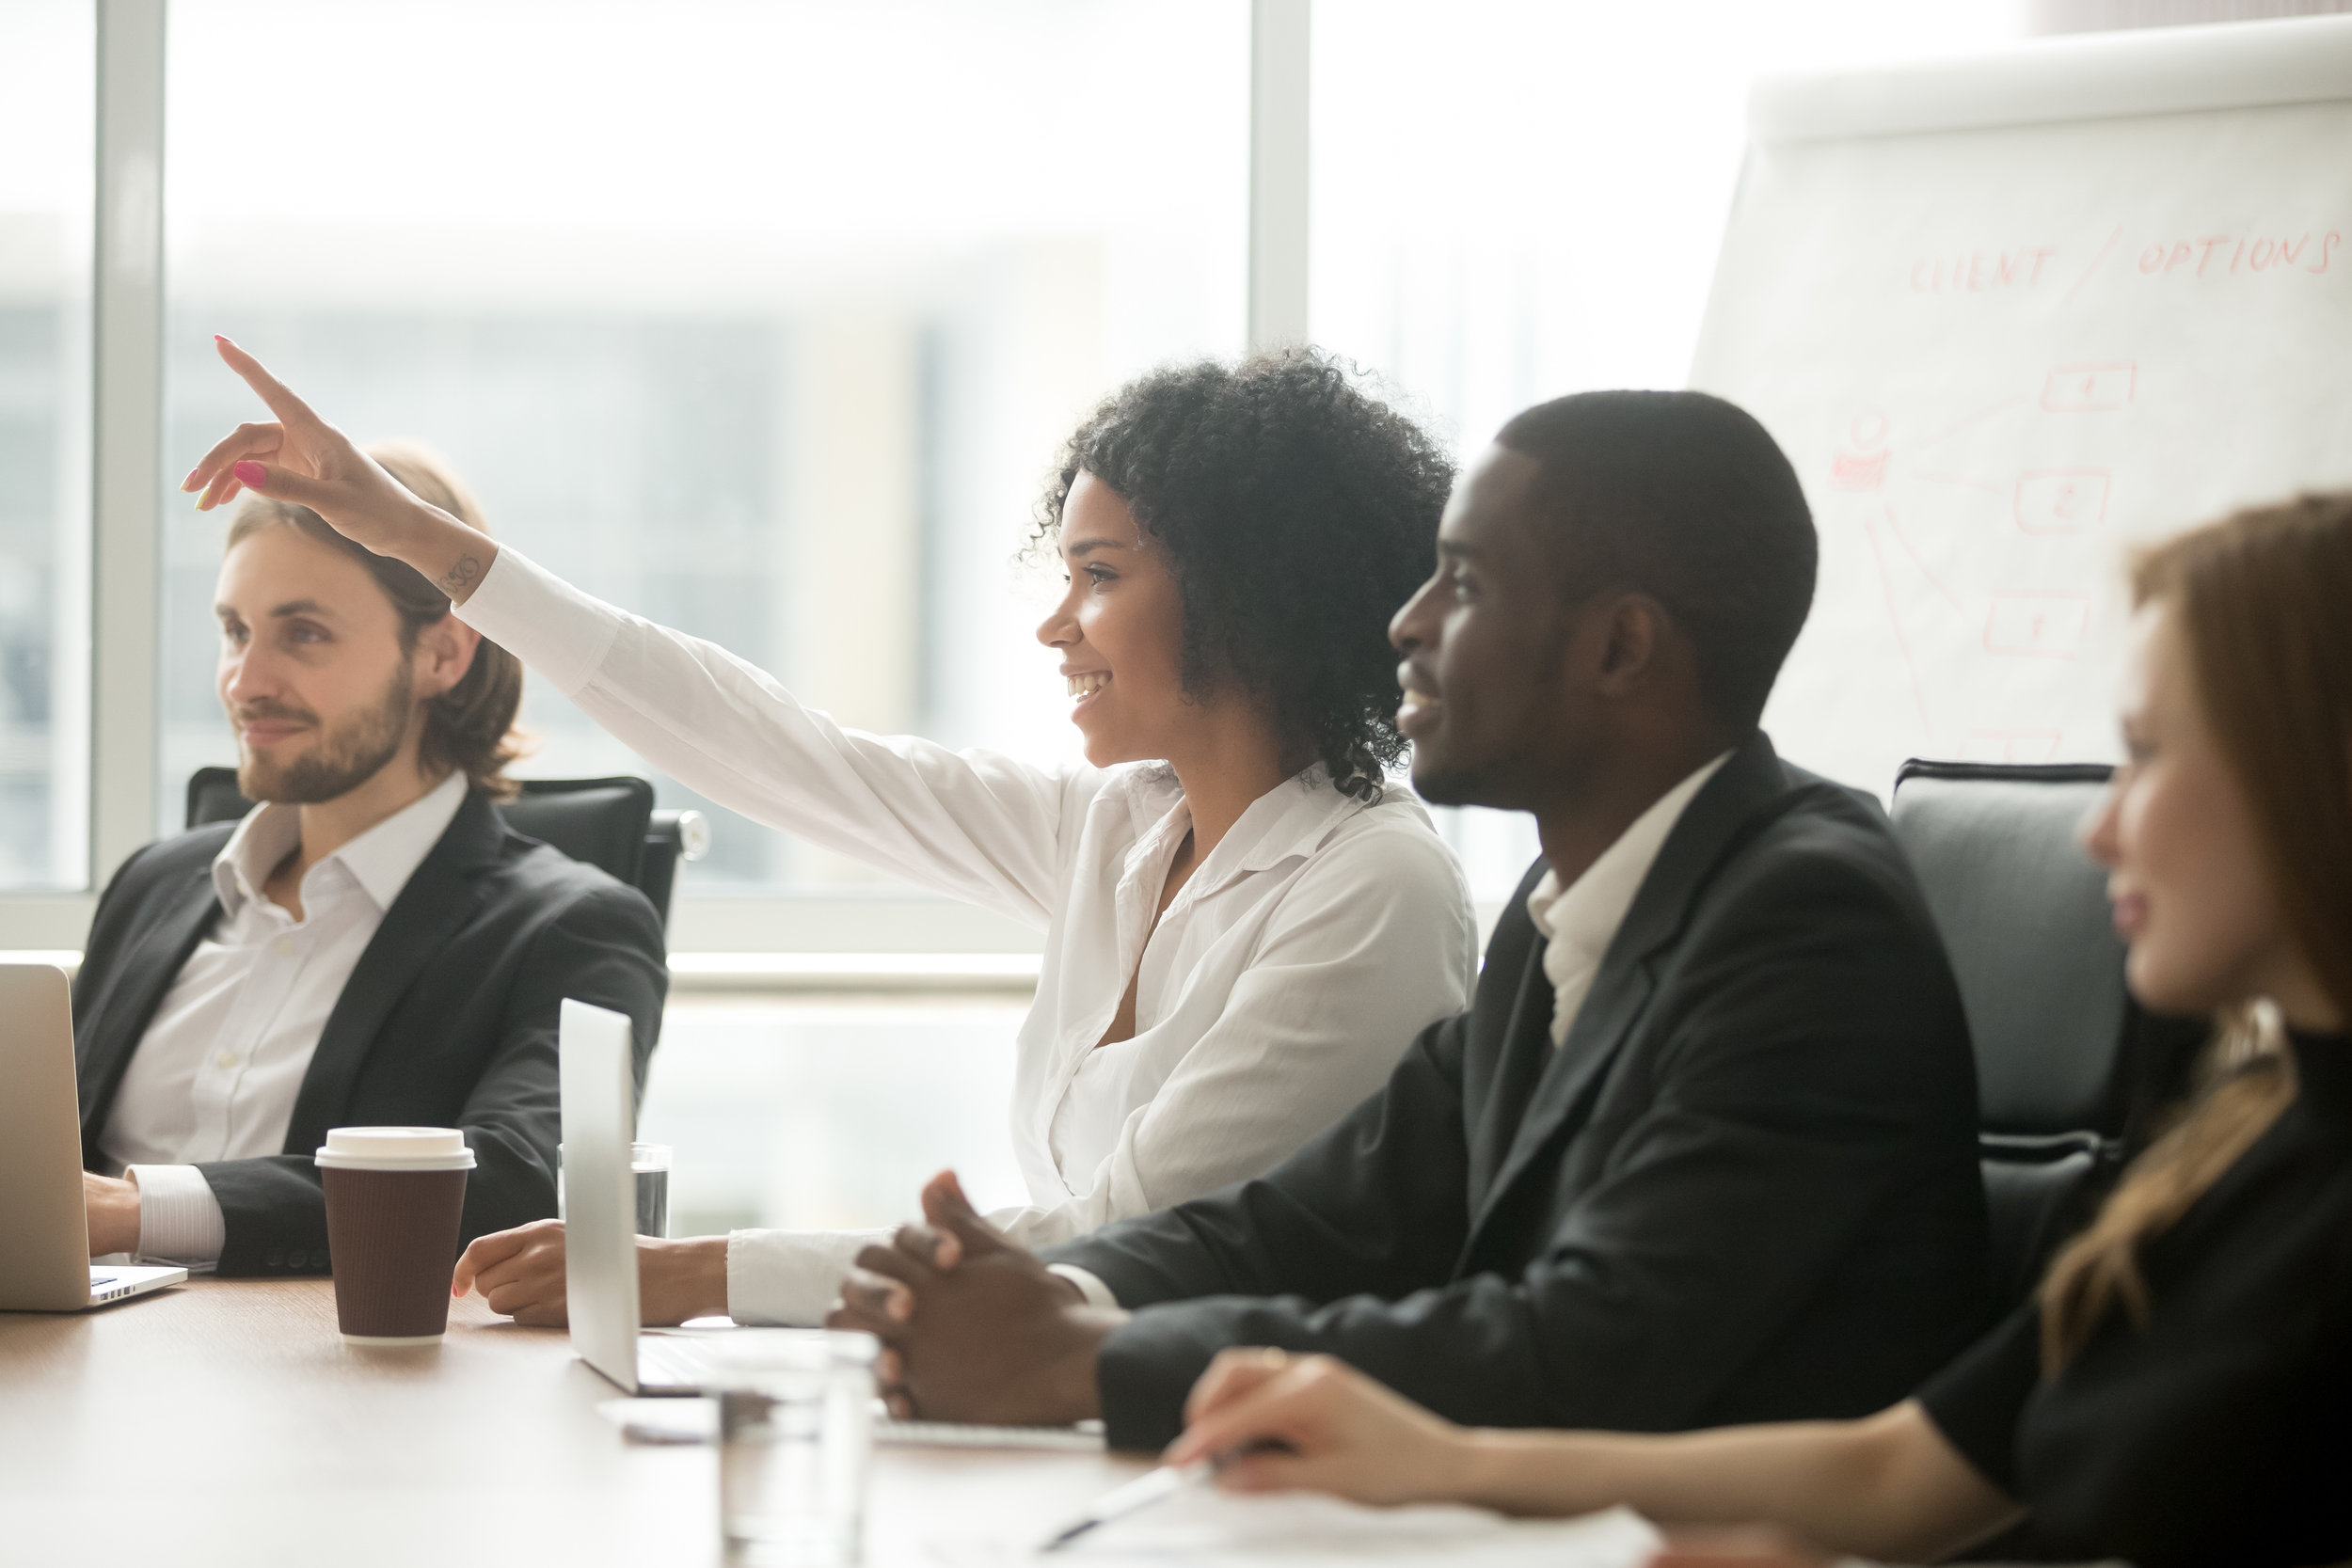 Copy of Copy of African woman raising hand to ask question at team training, curious black employee or conference seminar participant vote as volunteer at group office meeting with multiracial diverse businesspeople